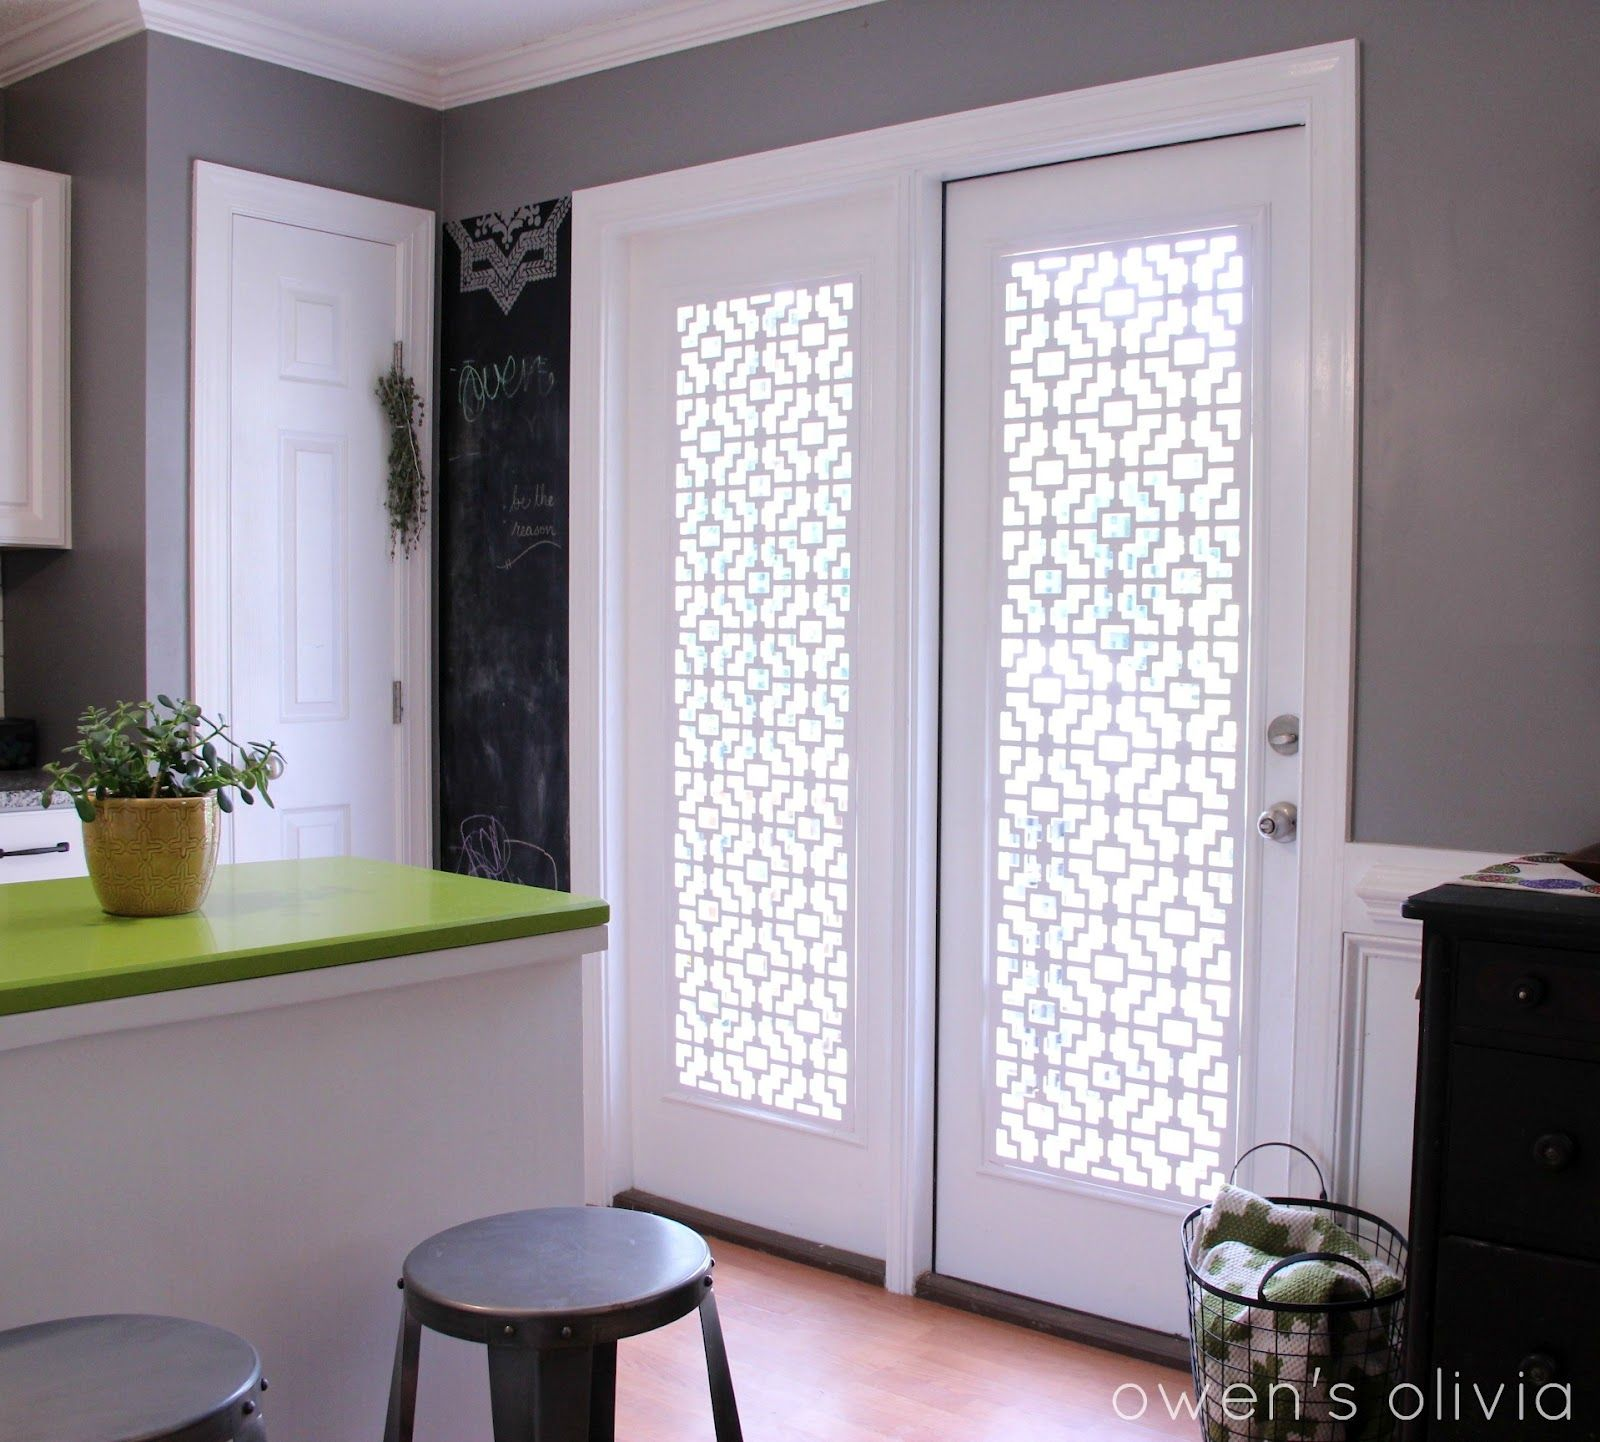 Window treatment ideas for sliding glass patio doors - Explore Door Window Treatments Window Coverings And More